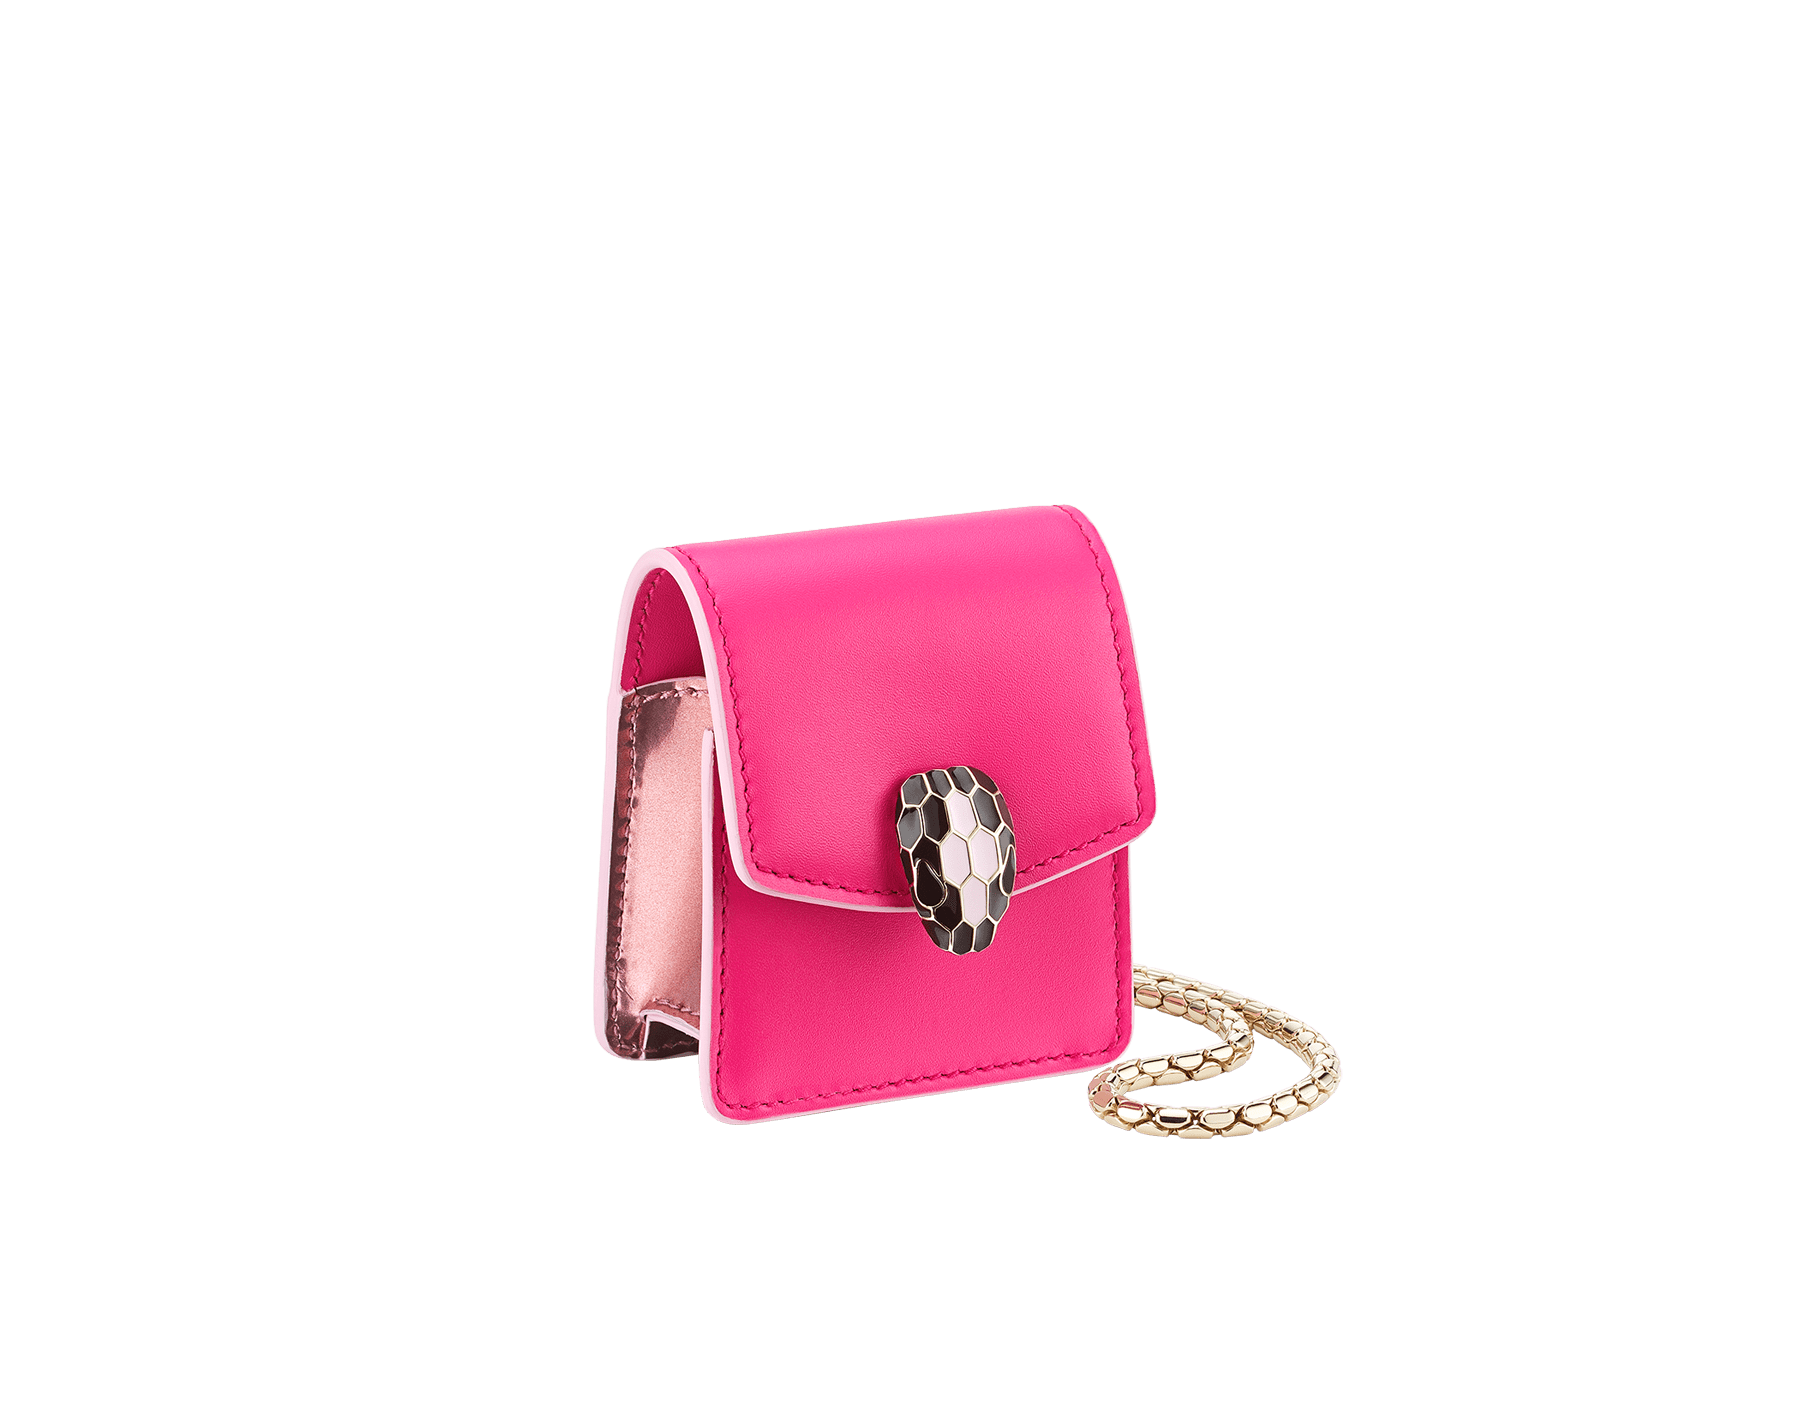 Serpenti Forever Holiday Edition AirPods holder in flash amethyst calf leather and rose quartz brushed metallic calf leather. Snakehead closure in light gold plated brass embellished with black and sakura pink enamel, and black onyx eyes. 289480 image 1